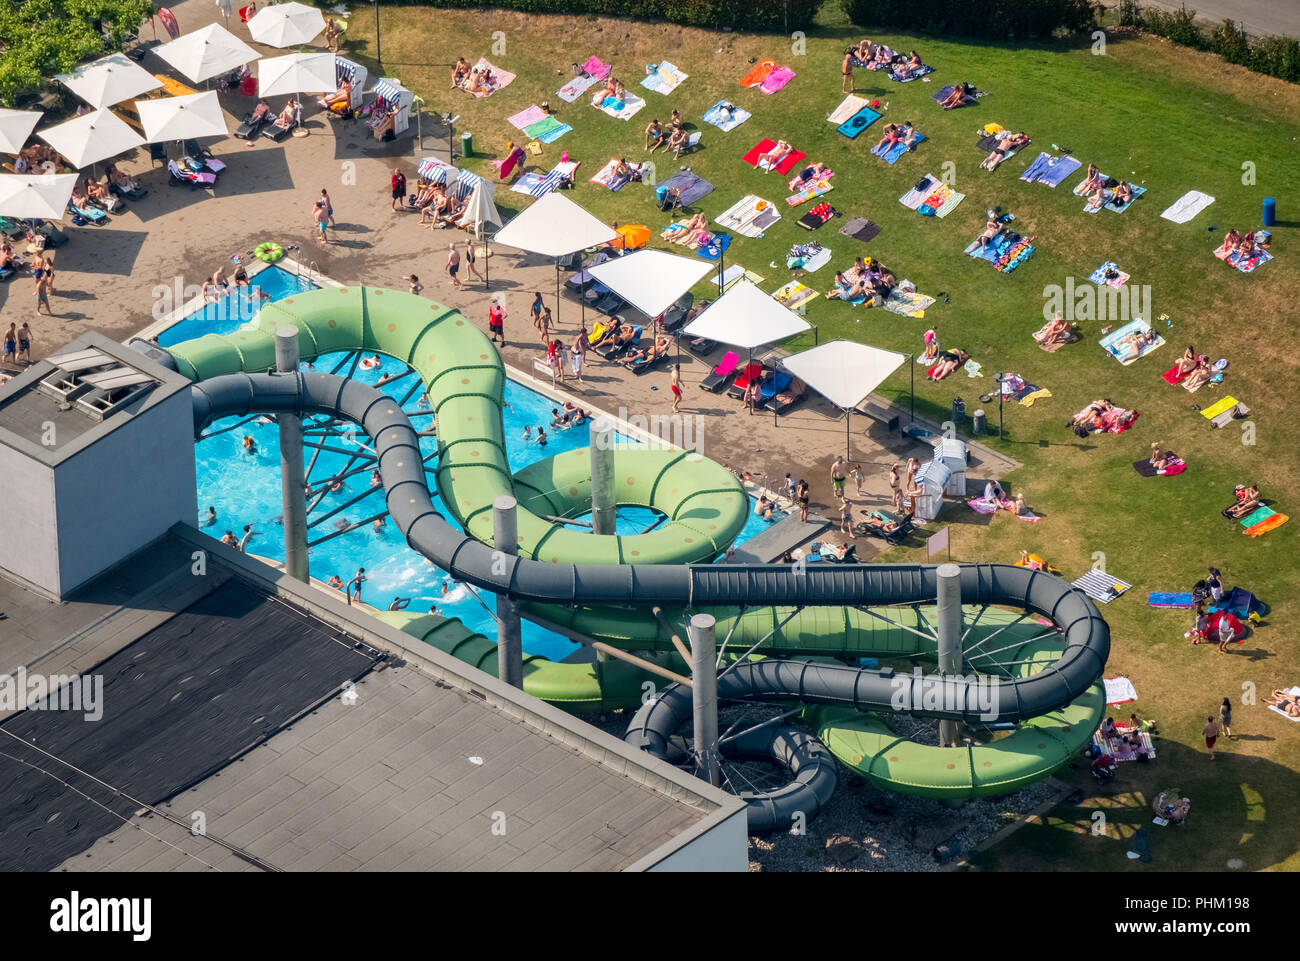 Zwembad Oberhausen Aquapark Stock Photos And Aquapark Stock Images Alamy